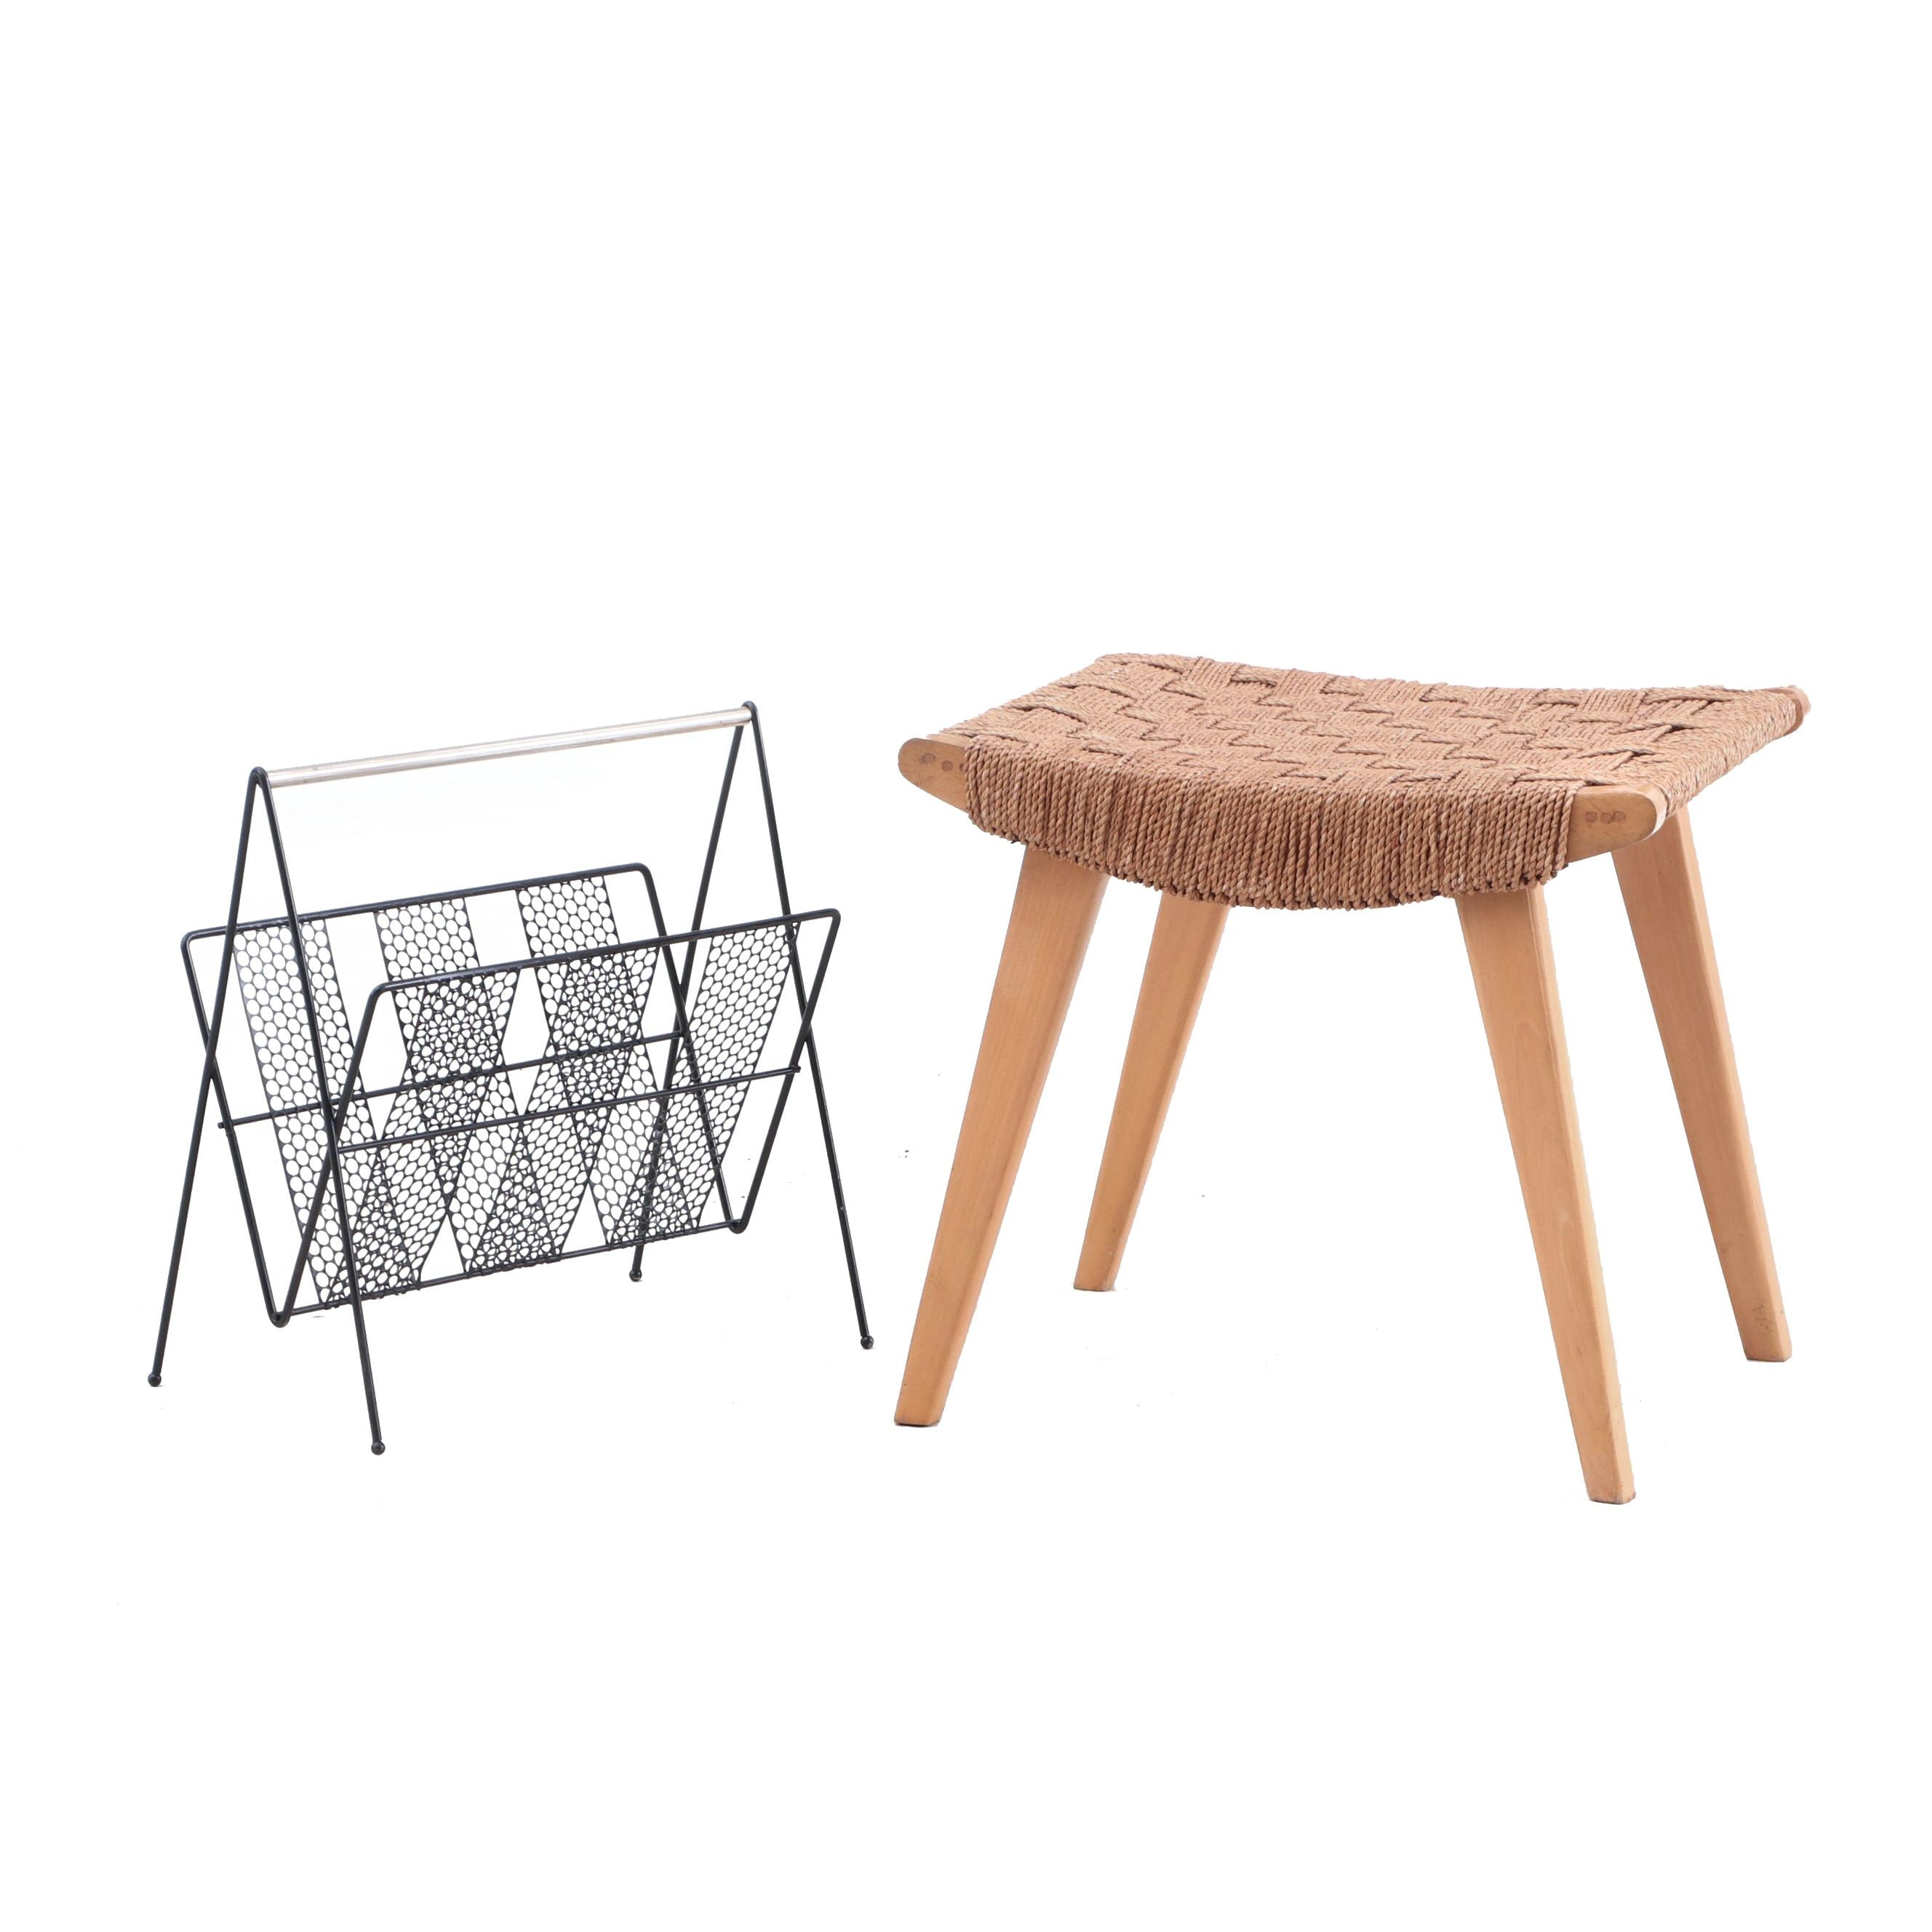 Woven Footstool and Wrought Magazine Rack